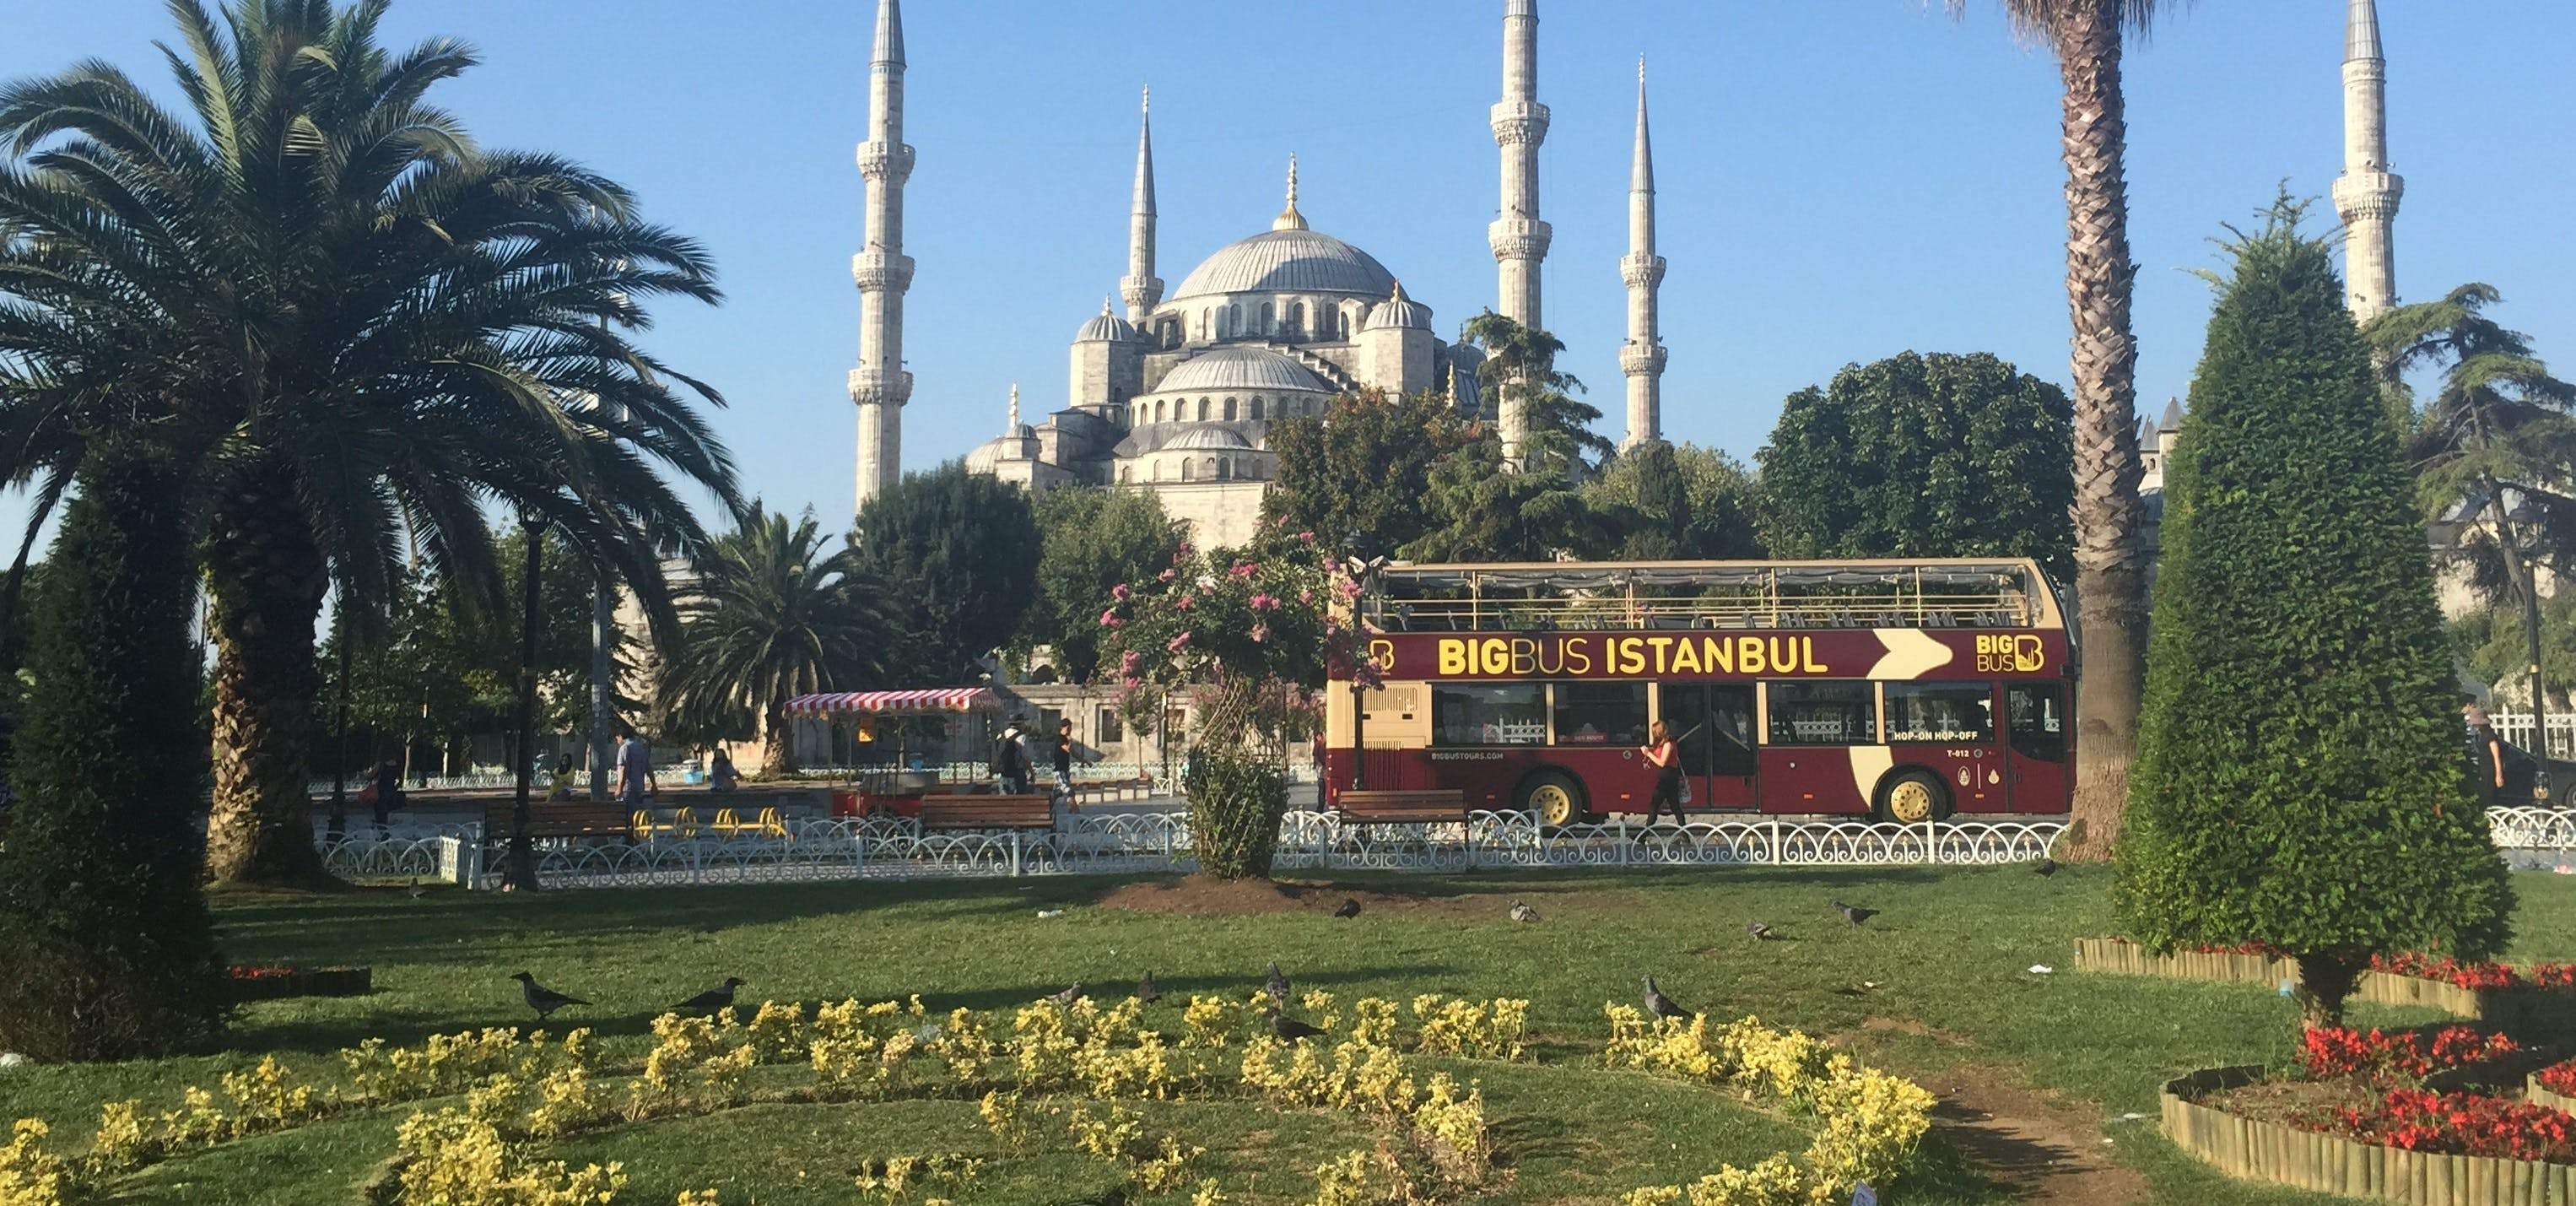 Big Bus hop-on hop-off  tour through Istanbul including free activities